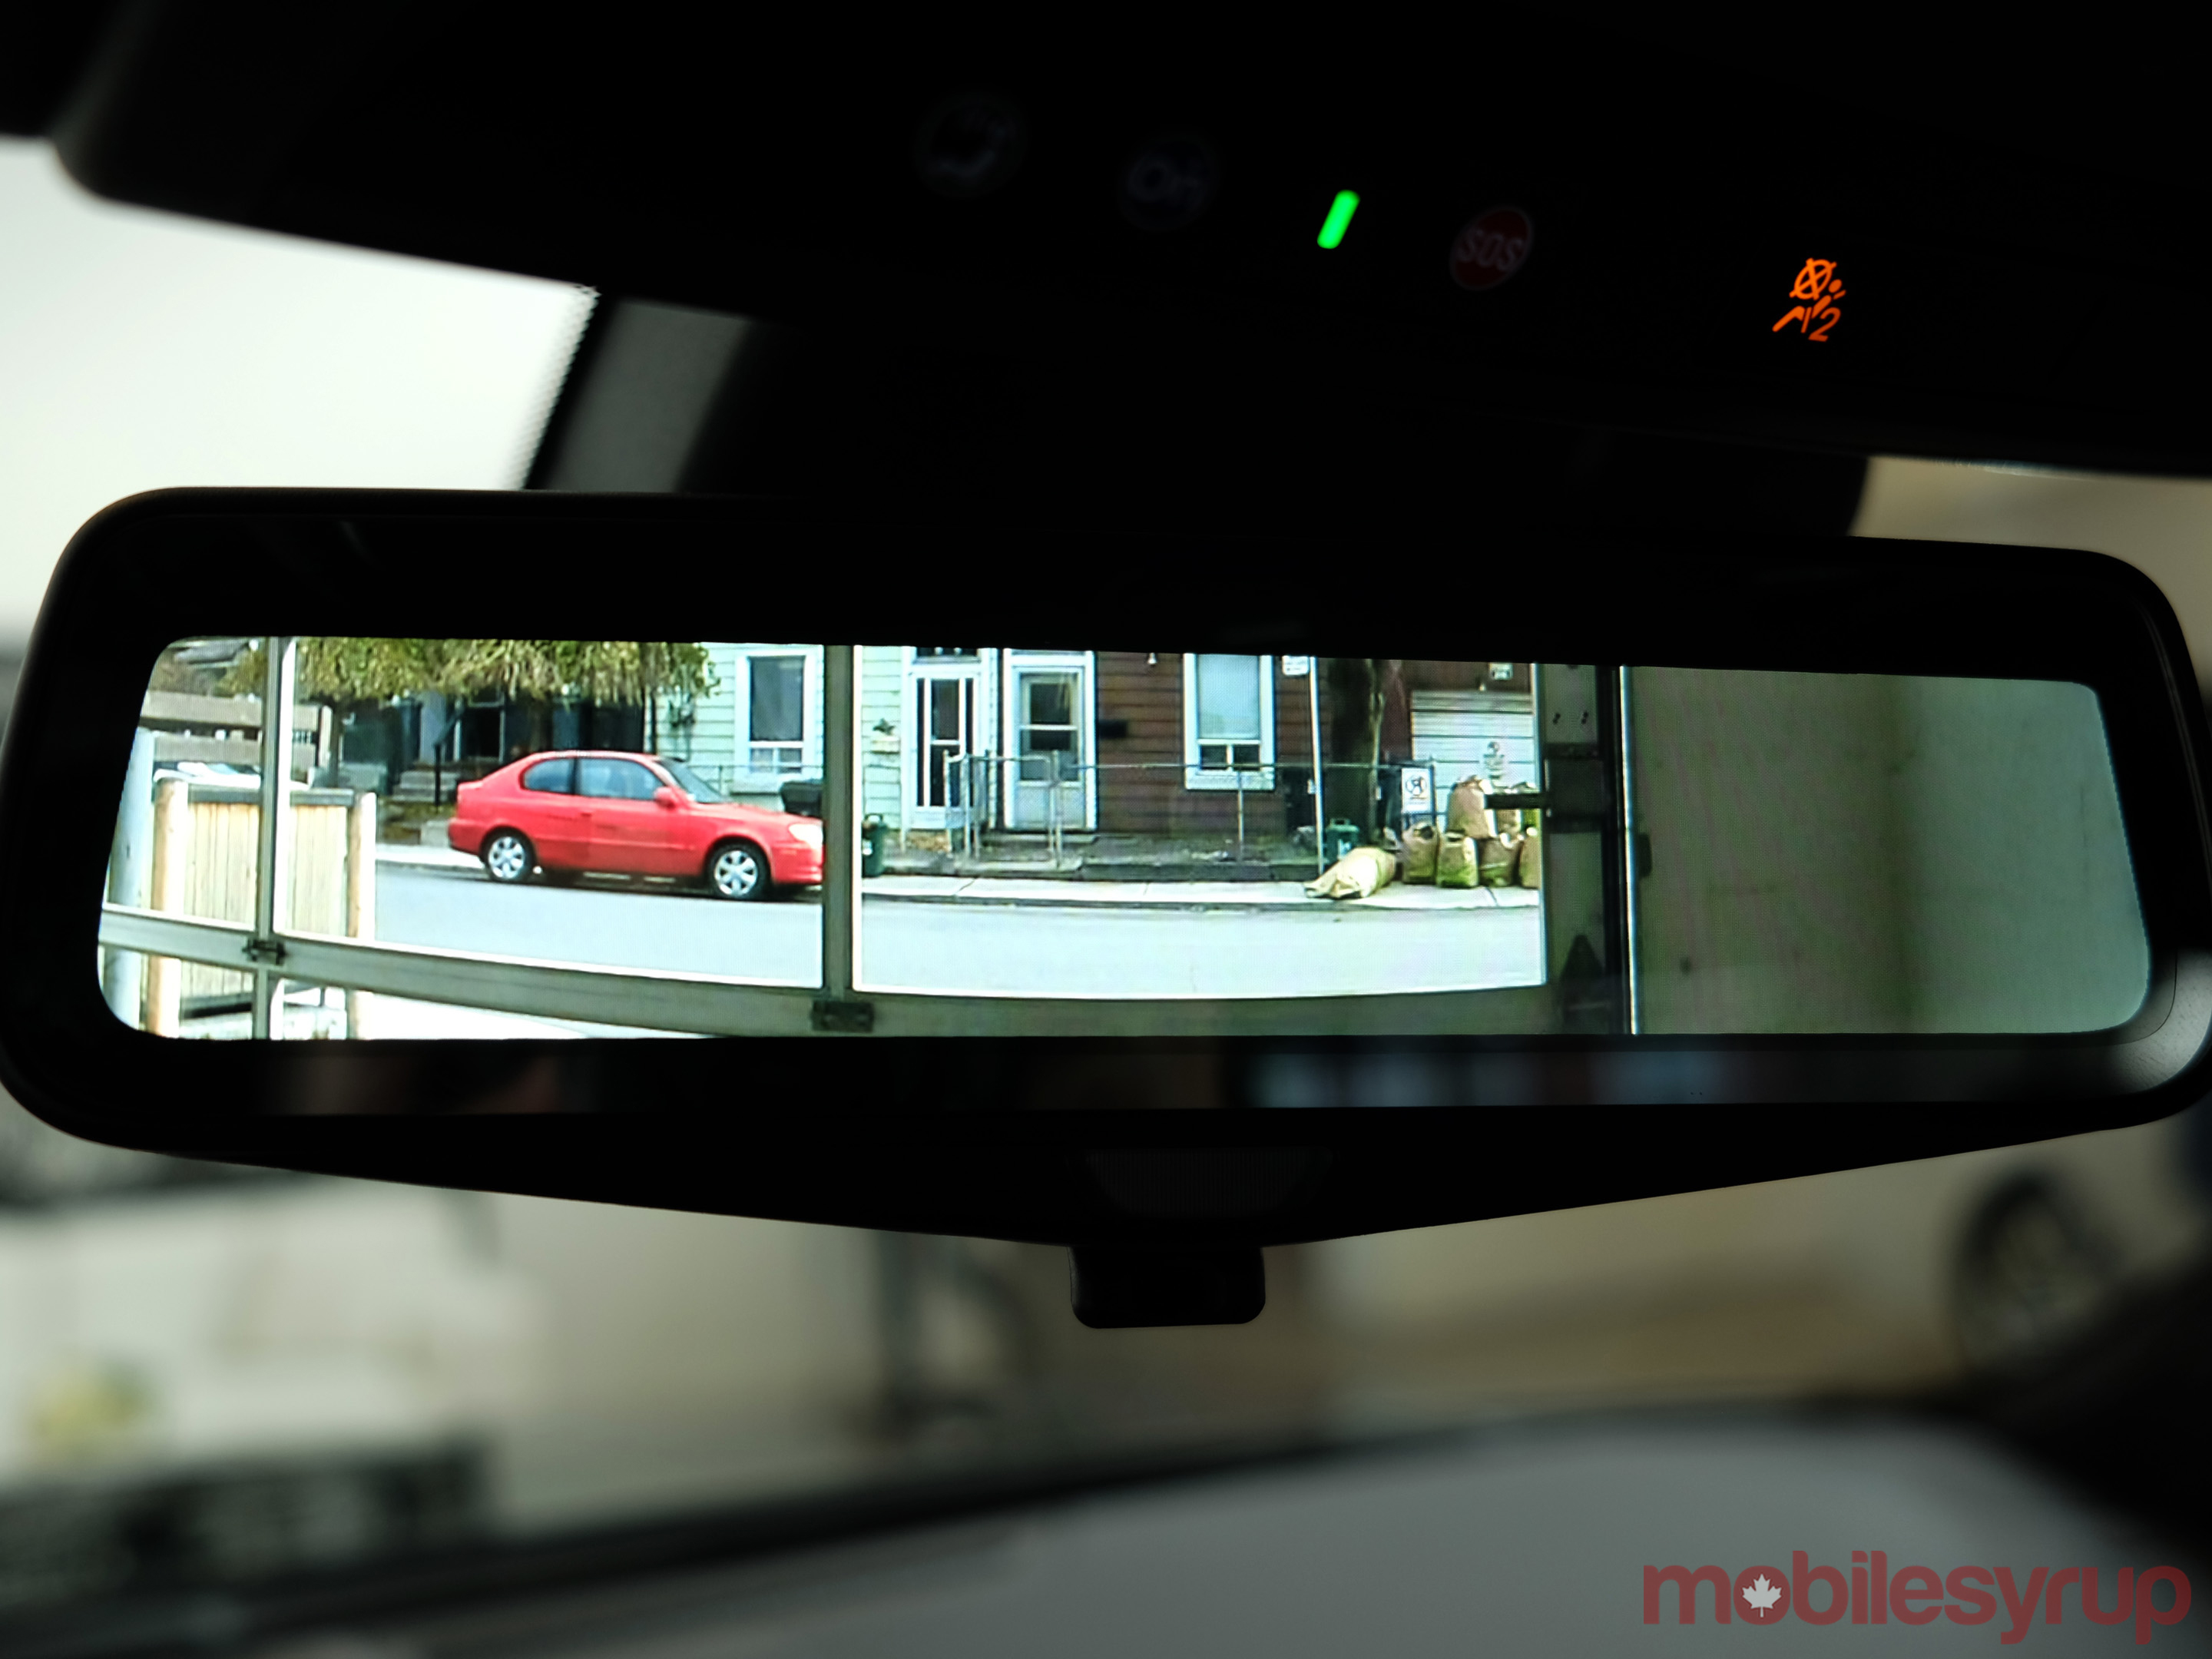 Cadillac-CT6-rearview-mirror